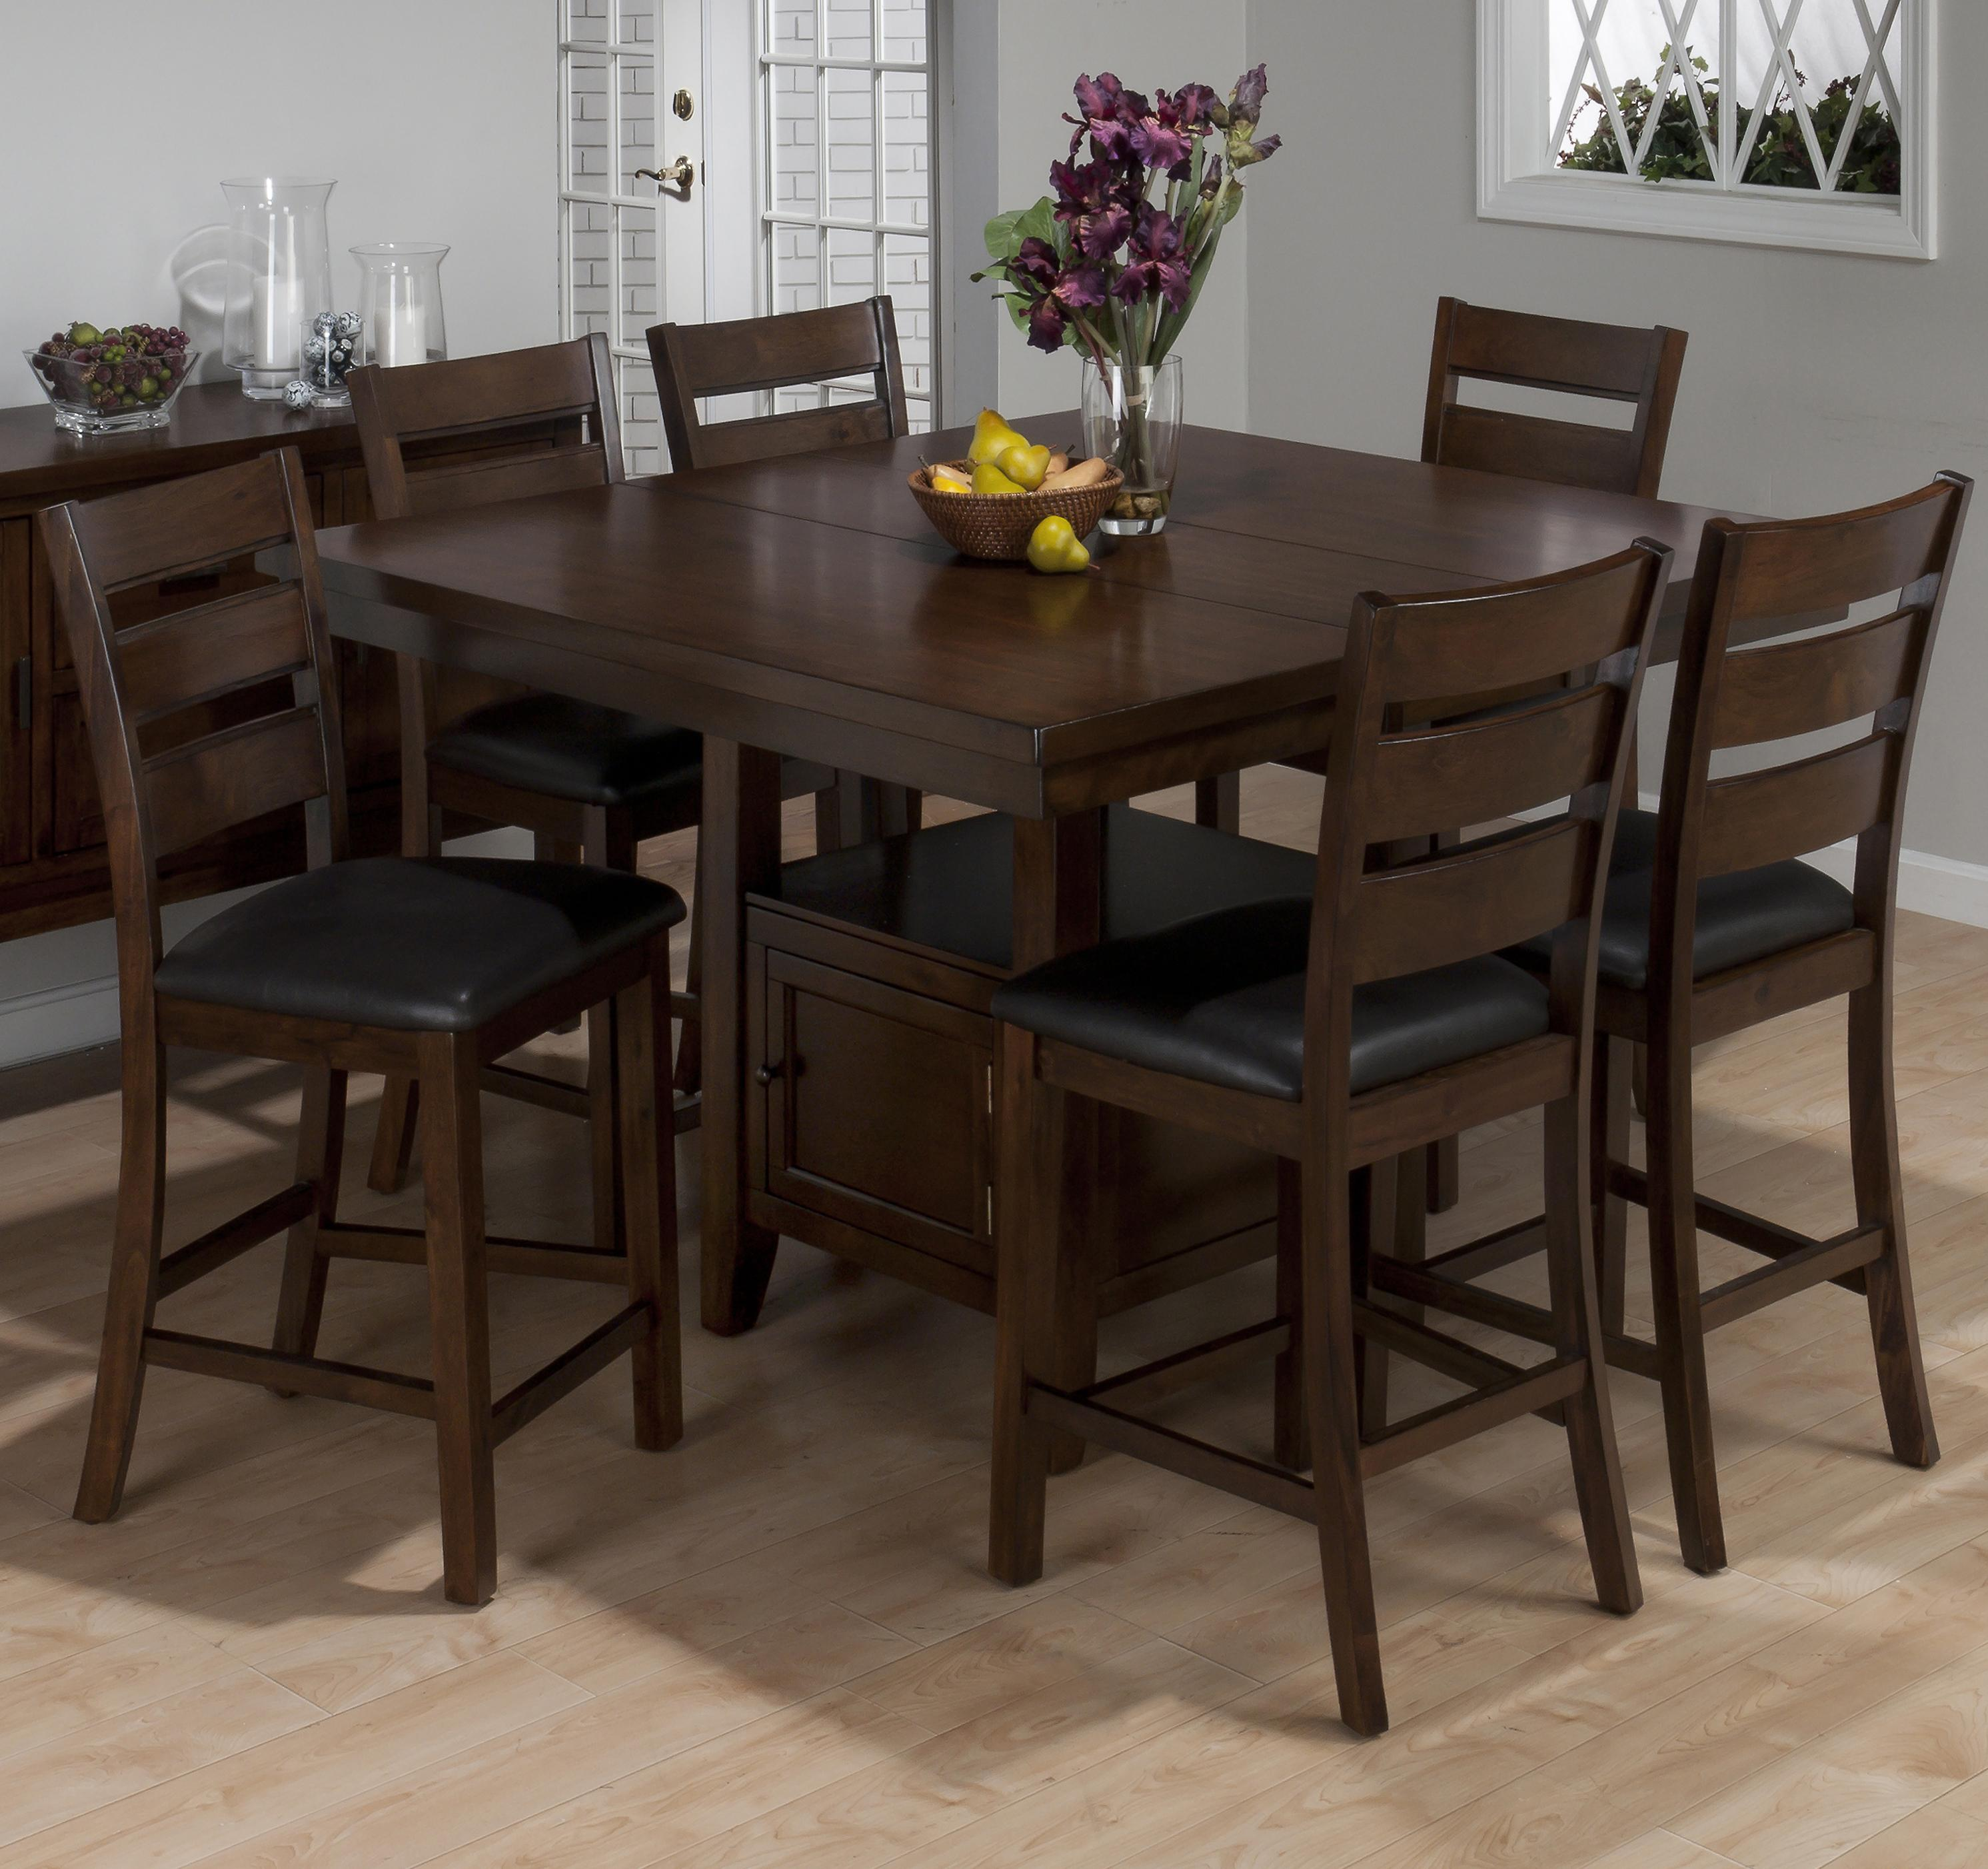 Table Sets Ikea Piece Dining Set Piece Kitchen Table Sets Stunning. Full resolution  portrait, nominally Width 2983 Height 2804 pixels, portrait with #AC941F.